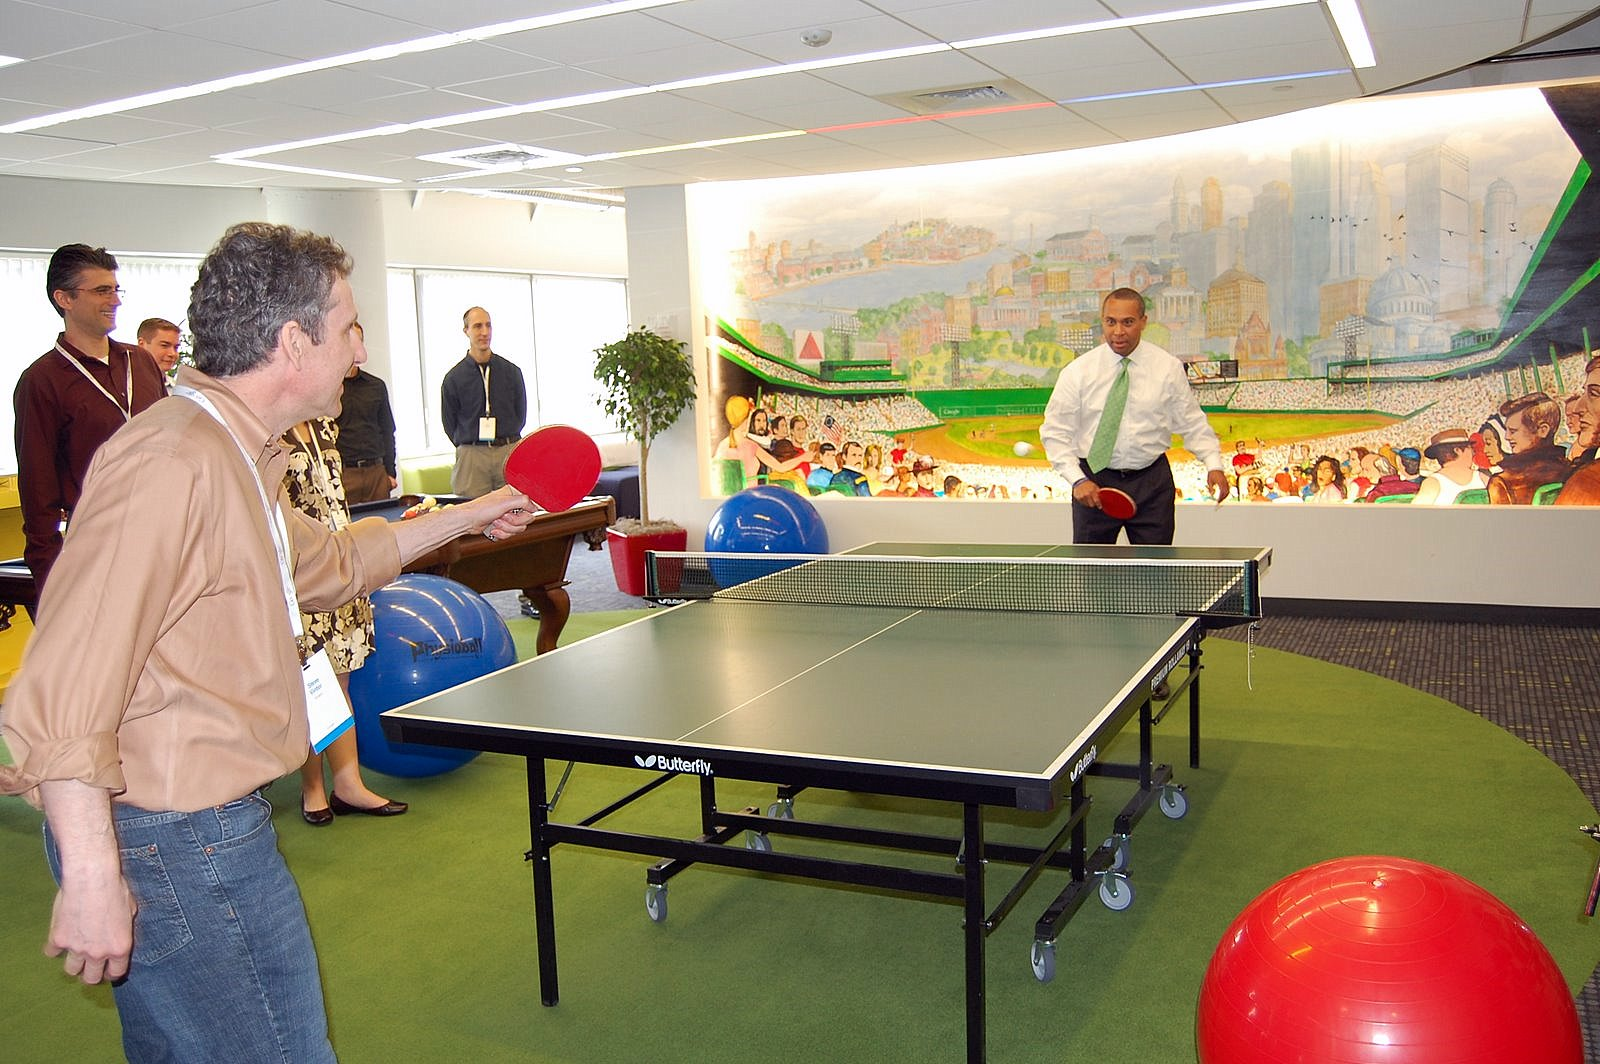 Steve_Vinter_and_Deval_Patrick_play_ping_pong[1]